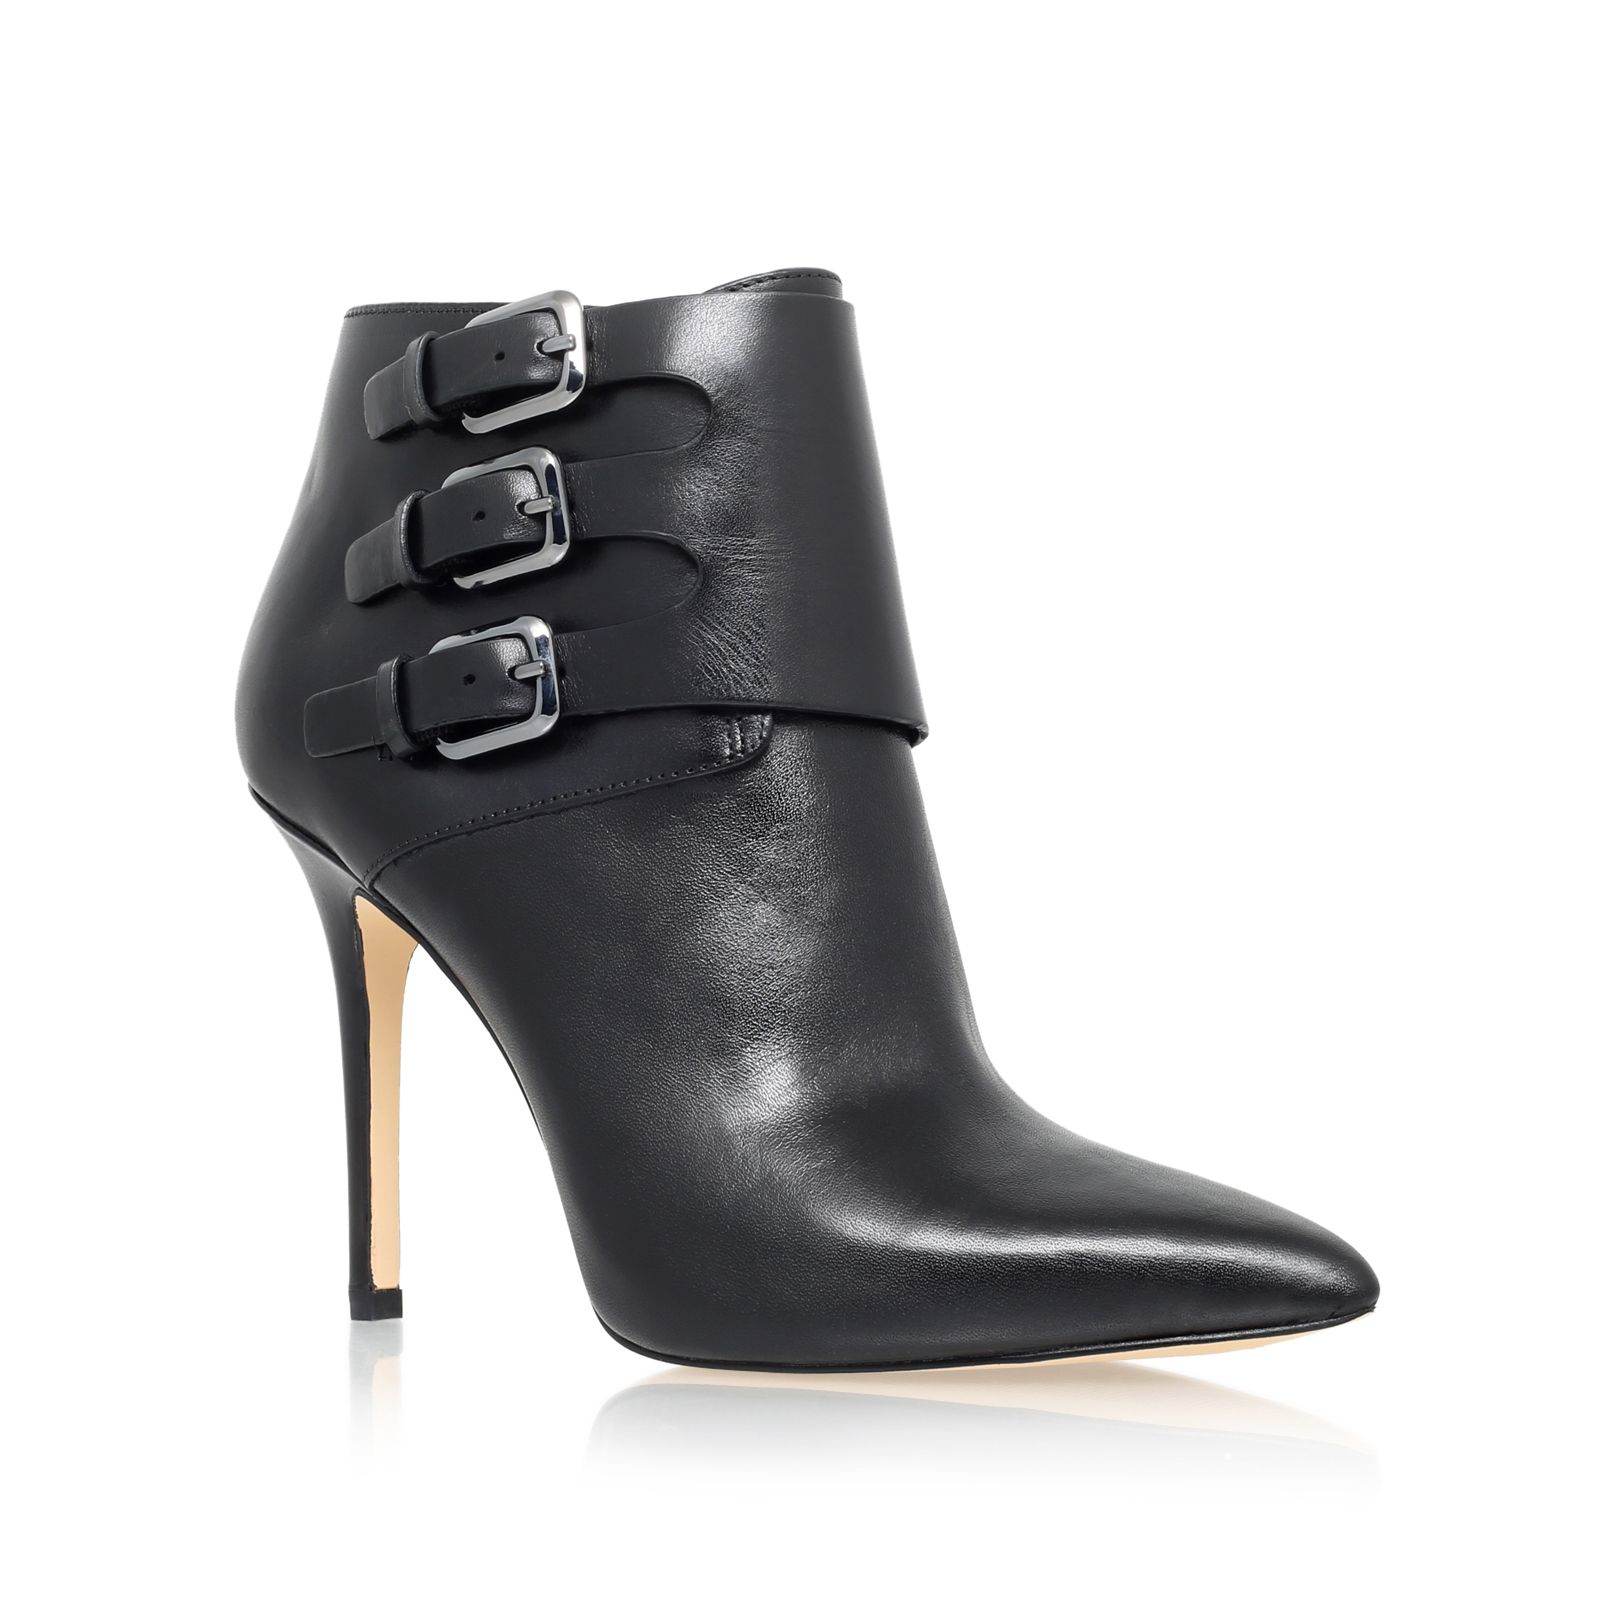 michael kors prudence high heel ankle boots in black lyst